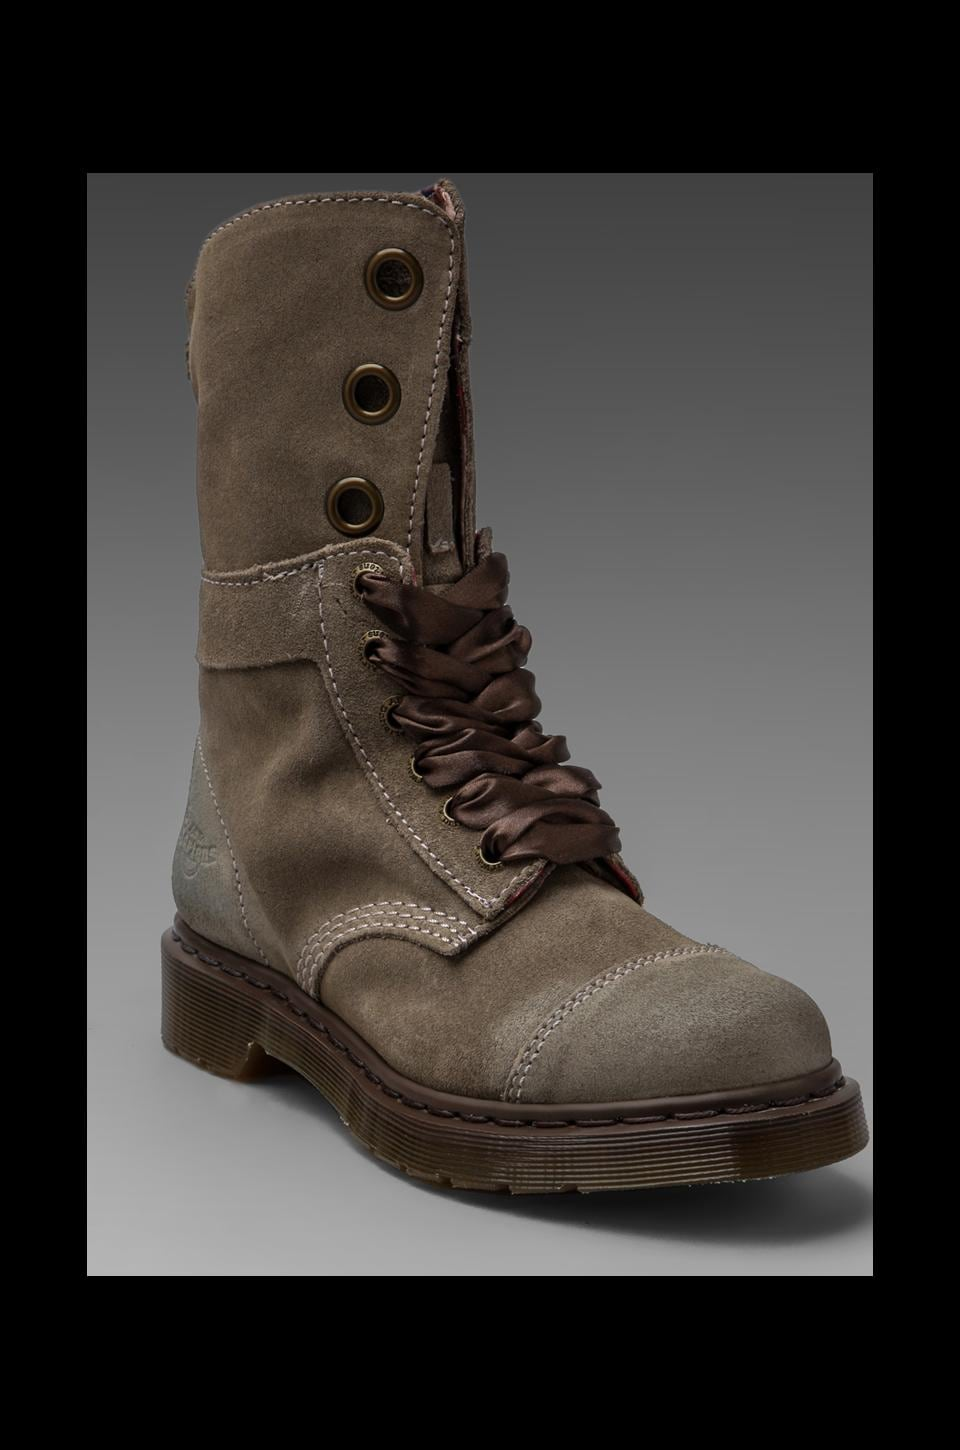 Dr. Martens Aimee 9 Eye Toe Cap Boot in Taupe